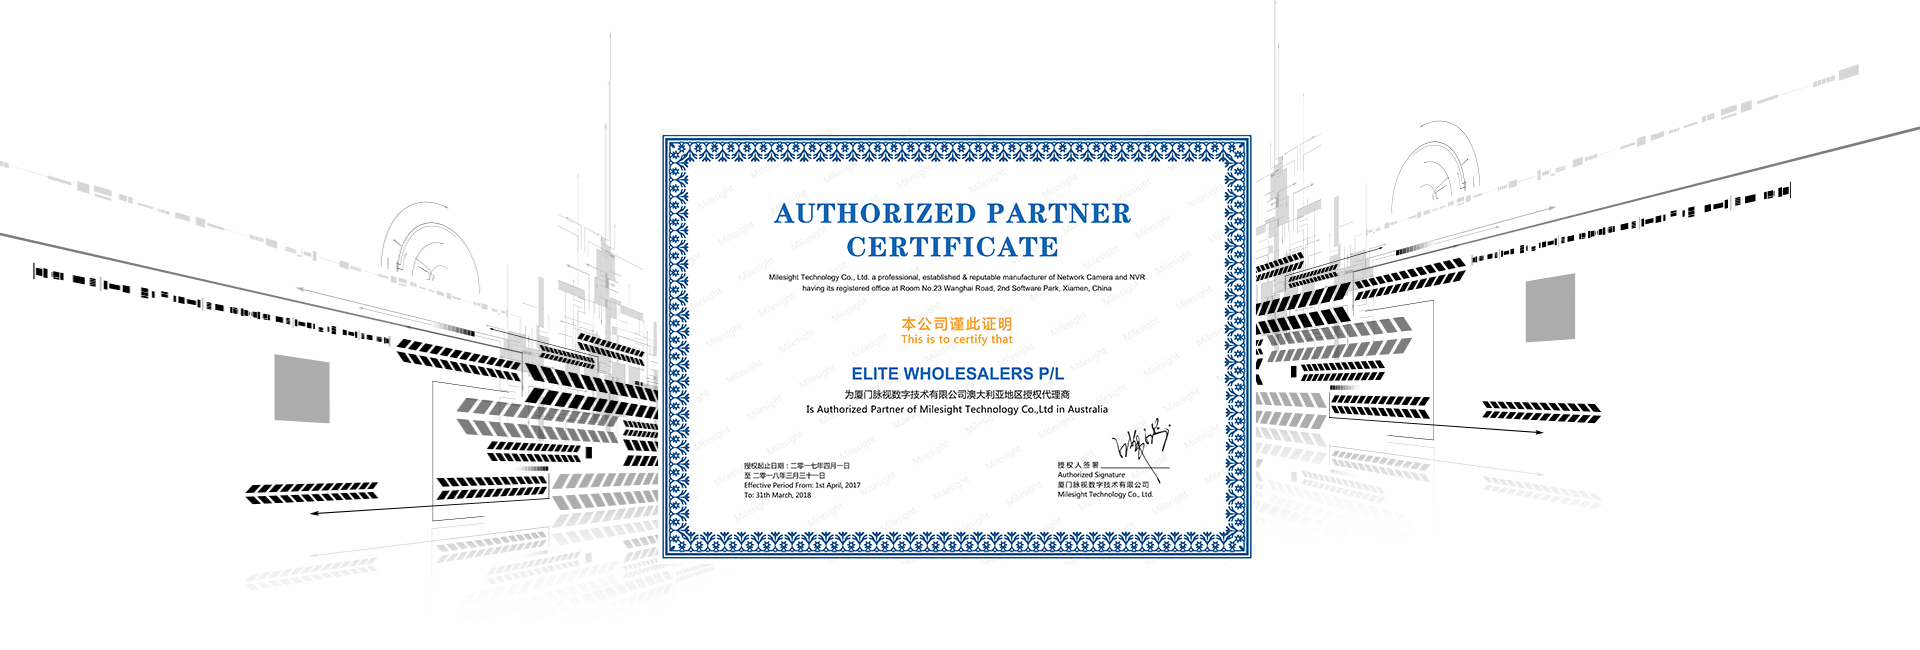 Milesight Authorize Partner Certificate